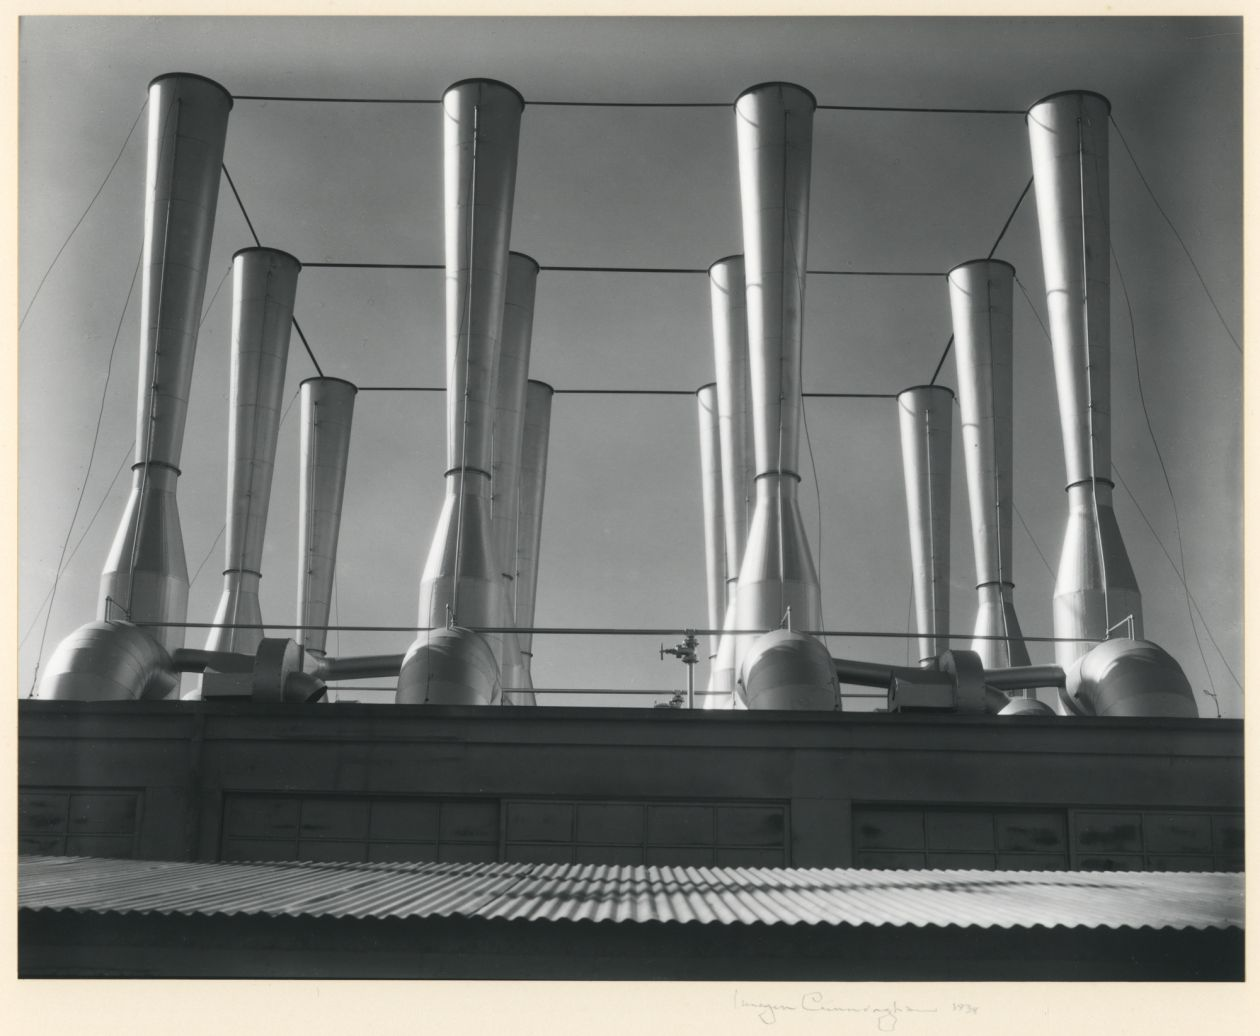 Fageol Factory Ventilators (1934) by Imogen Cunningham